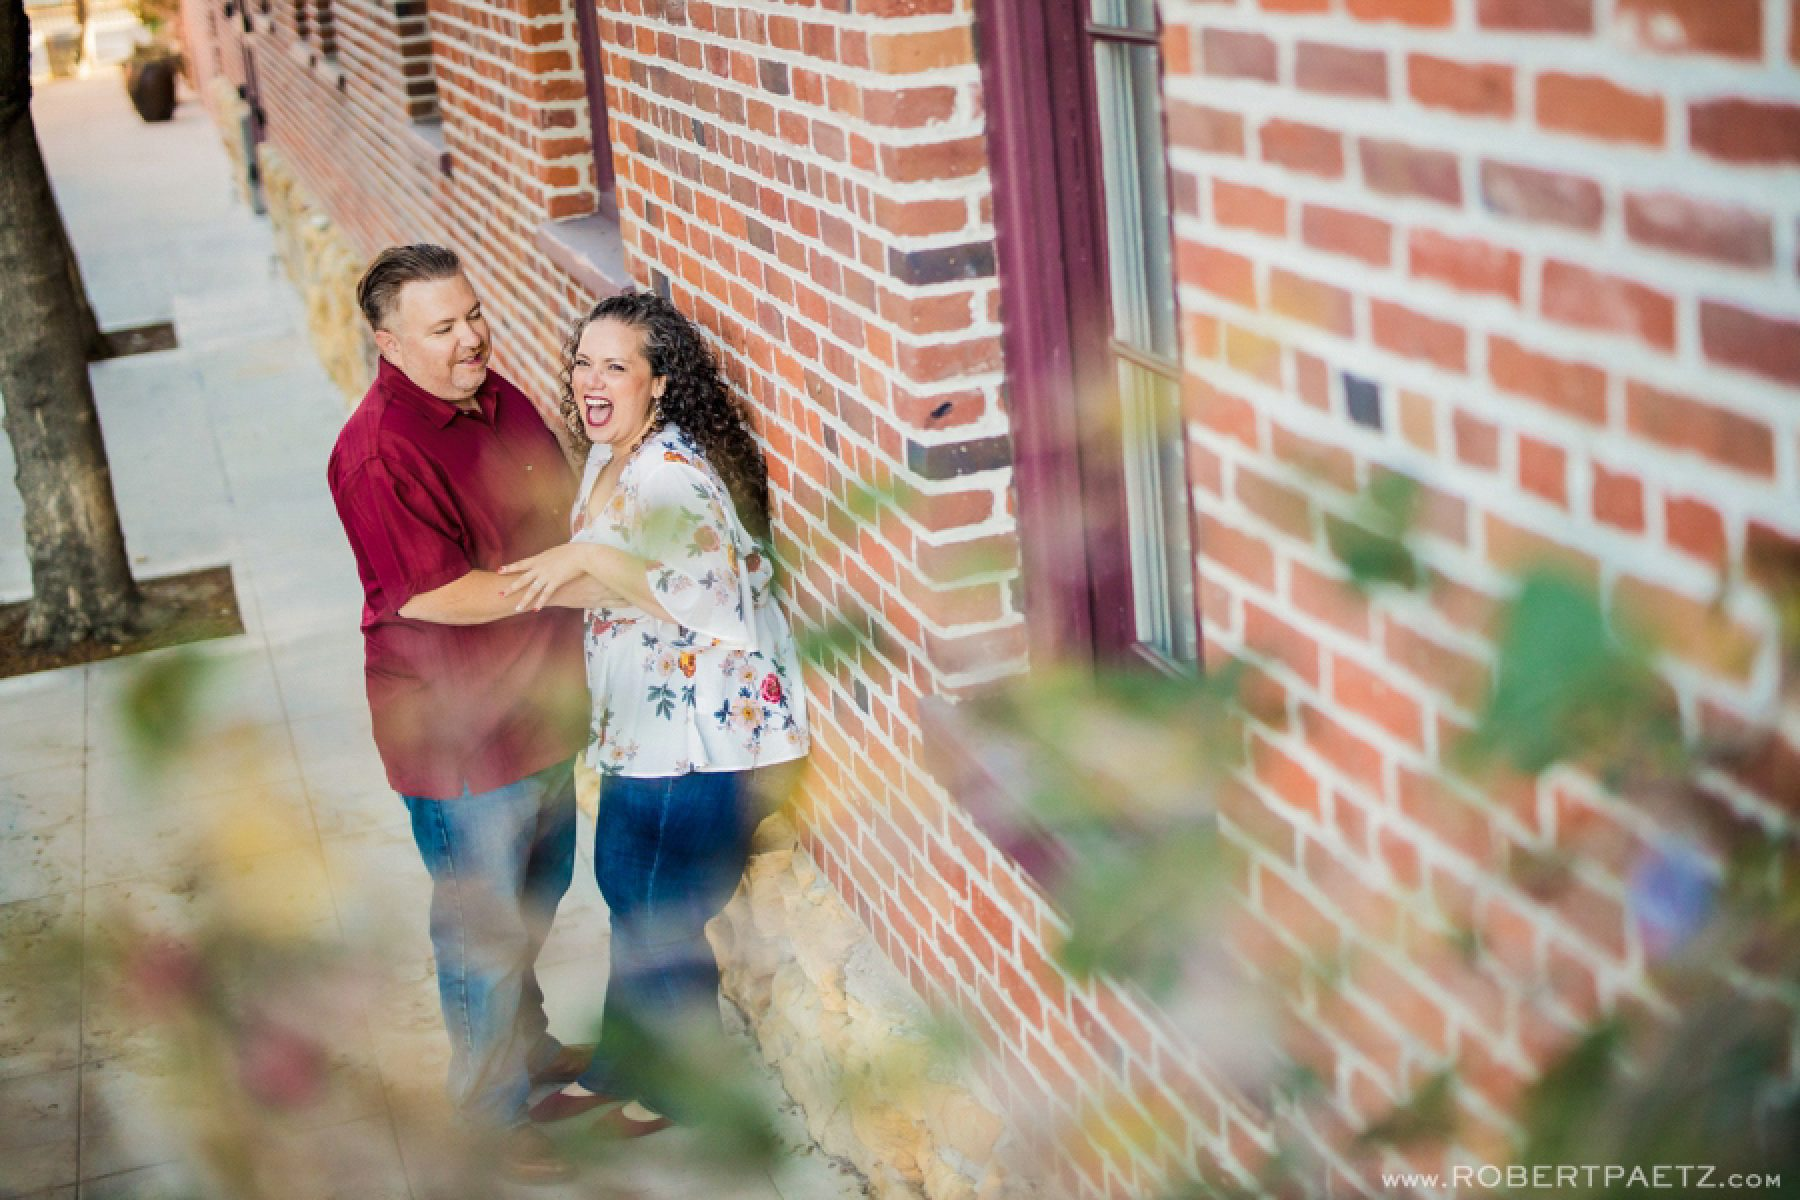 A downtown Los Angeles engagement photography session near Union Station and Olvera Street, photographed by the west coast destination wedding photographer, Robert Paetz.